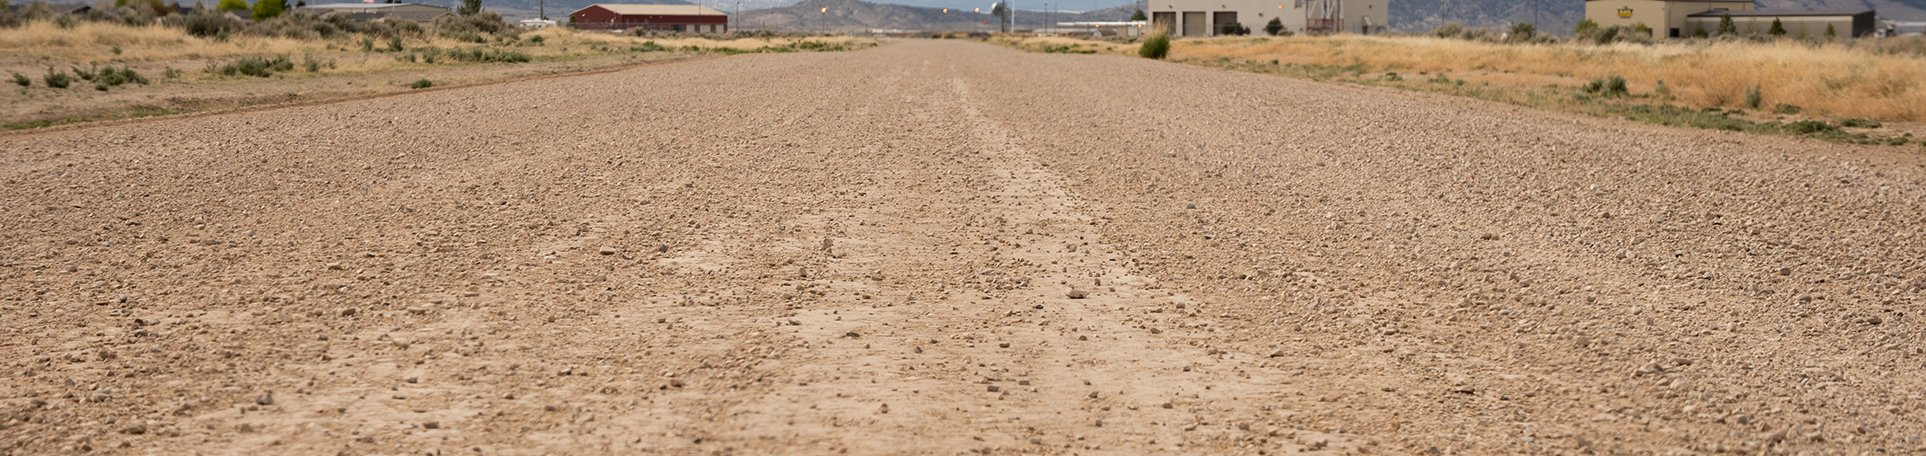 Unpaved Road Use Background